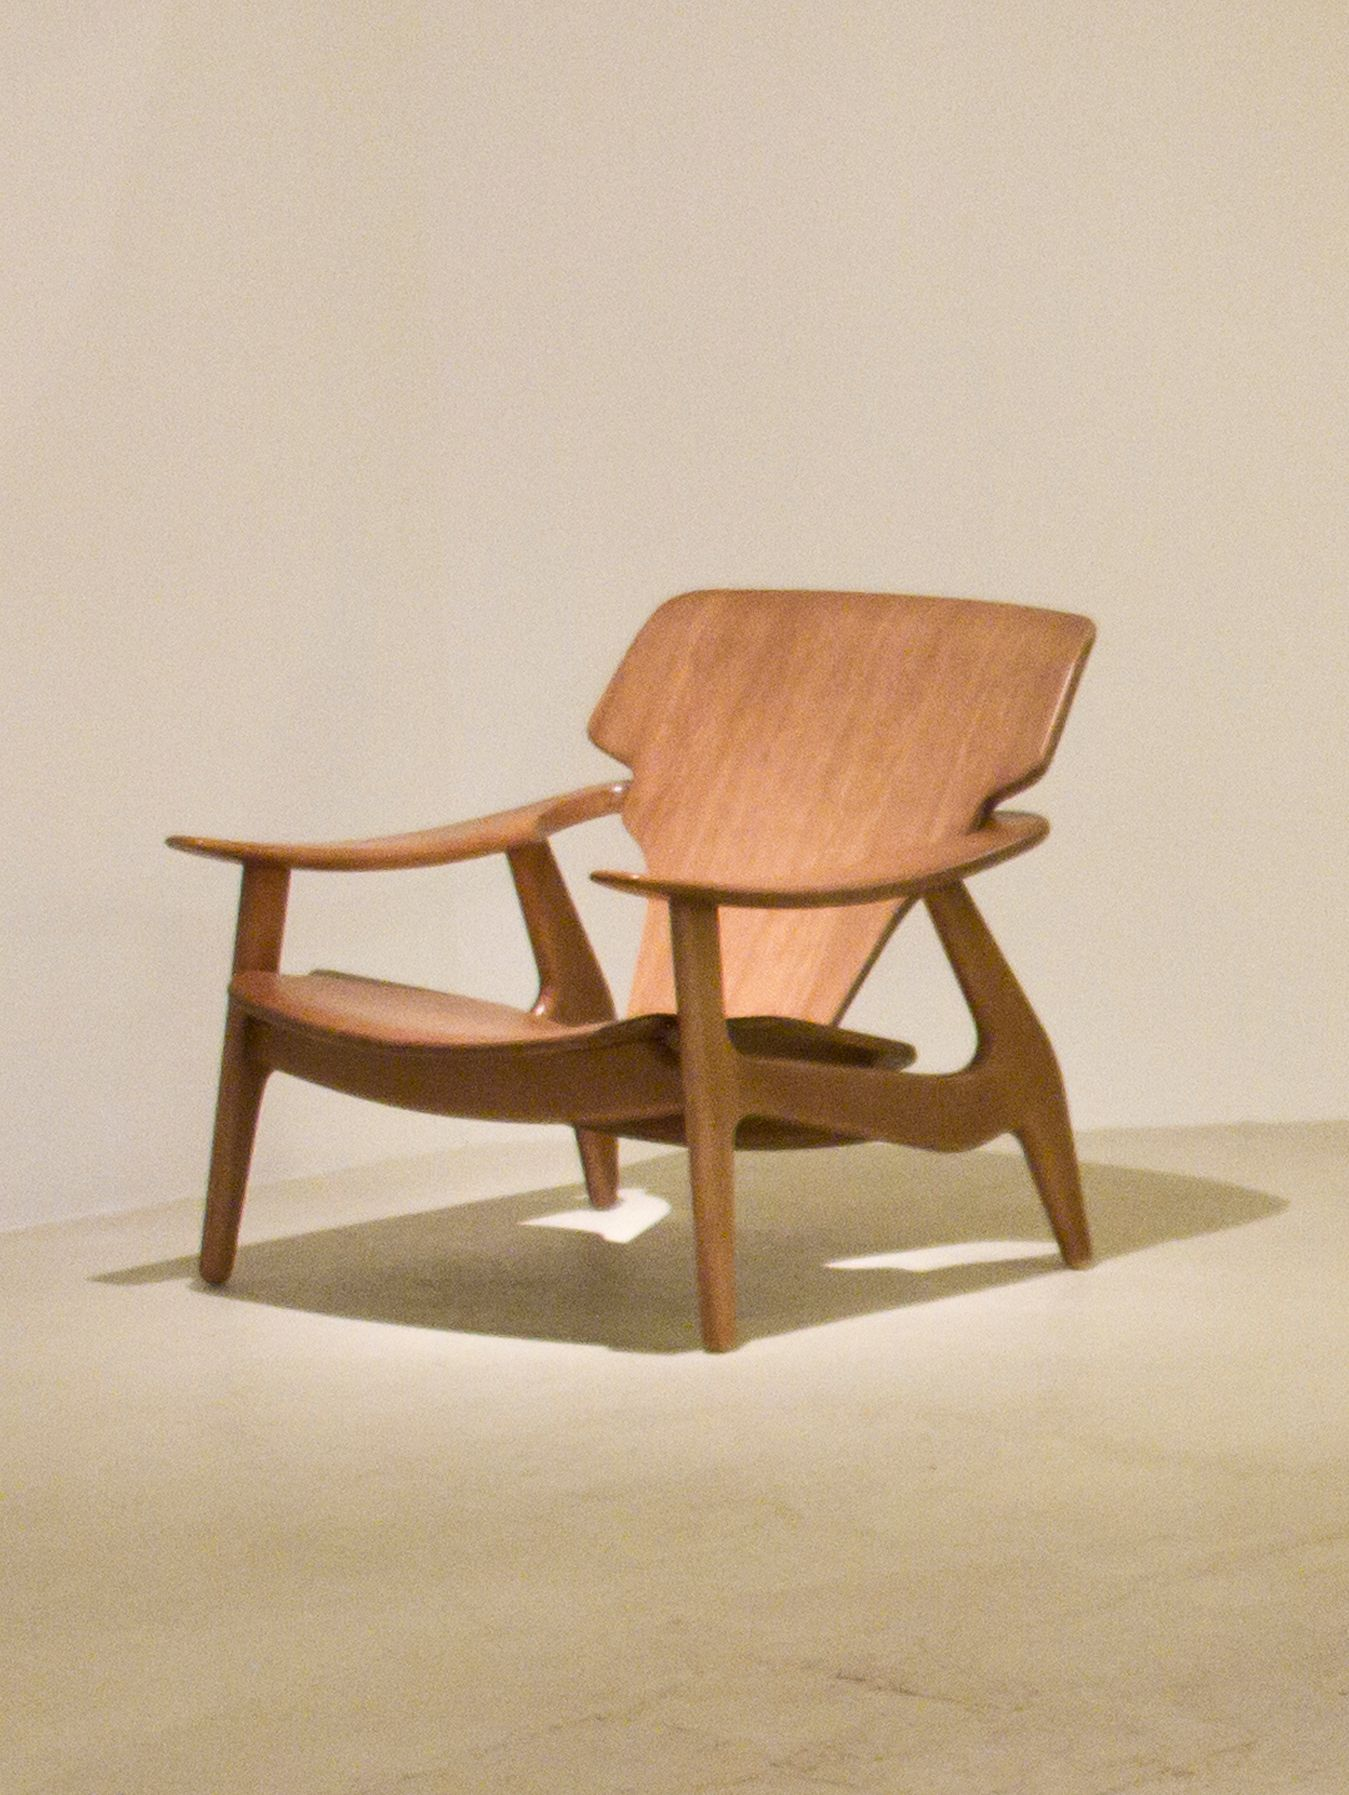 Diz armchair designed by Sergio Rodrigues. Available at ESPASSO. Midcentury modern Brazilian design.